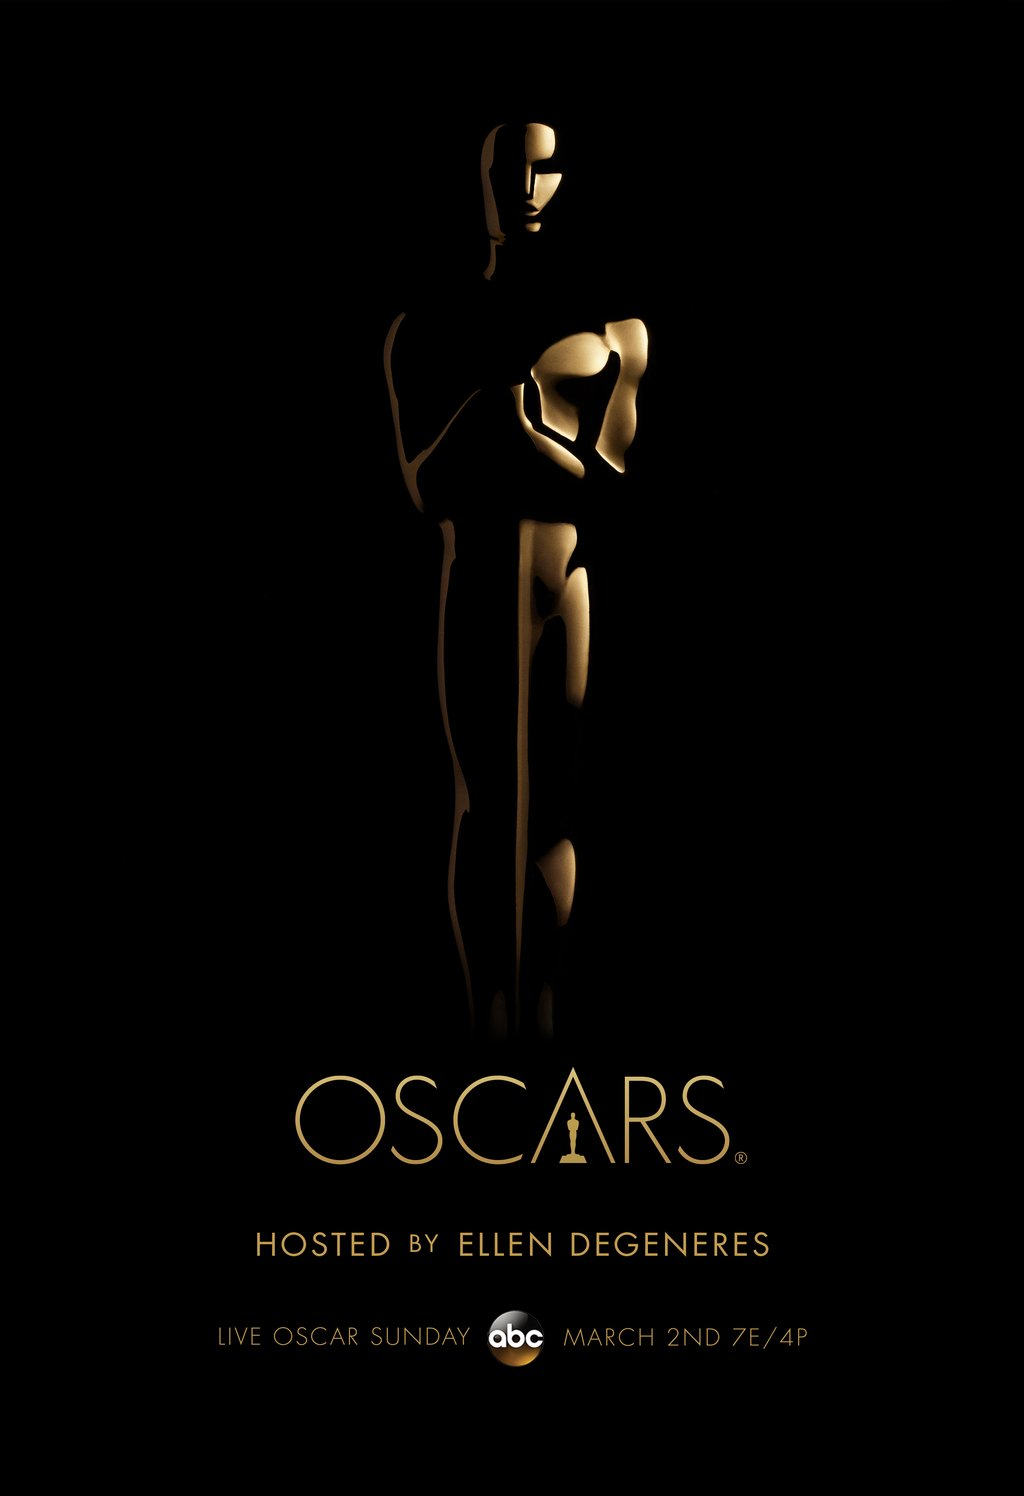 86th Annual Academy Award Poster